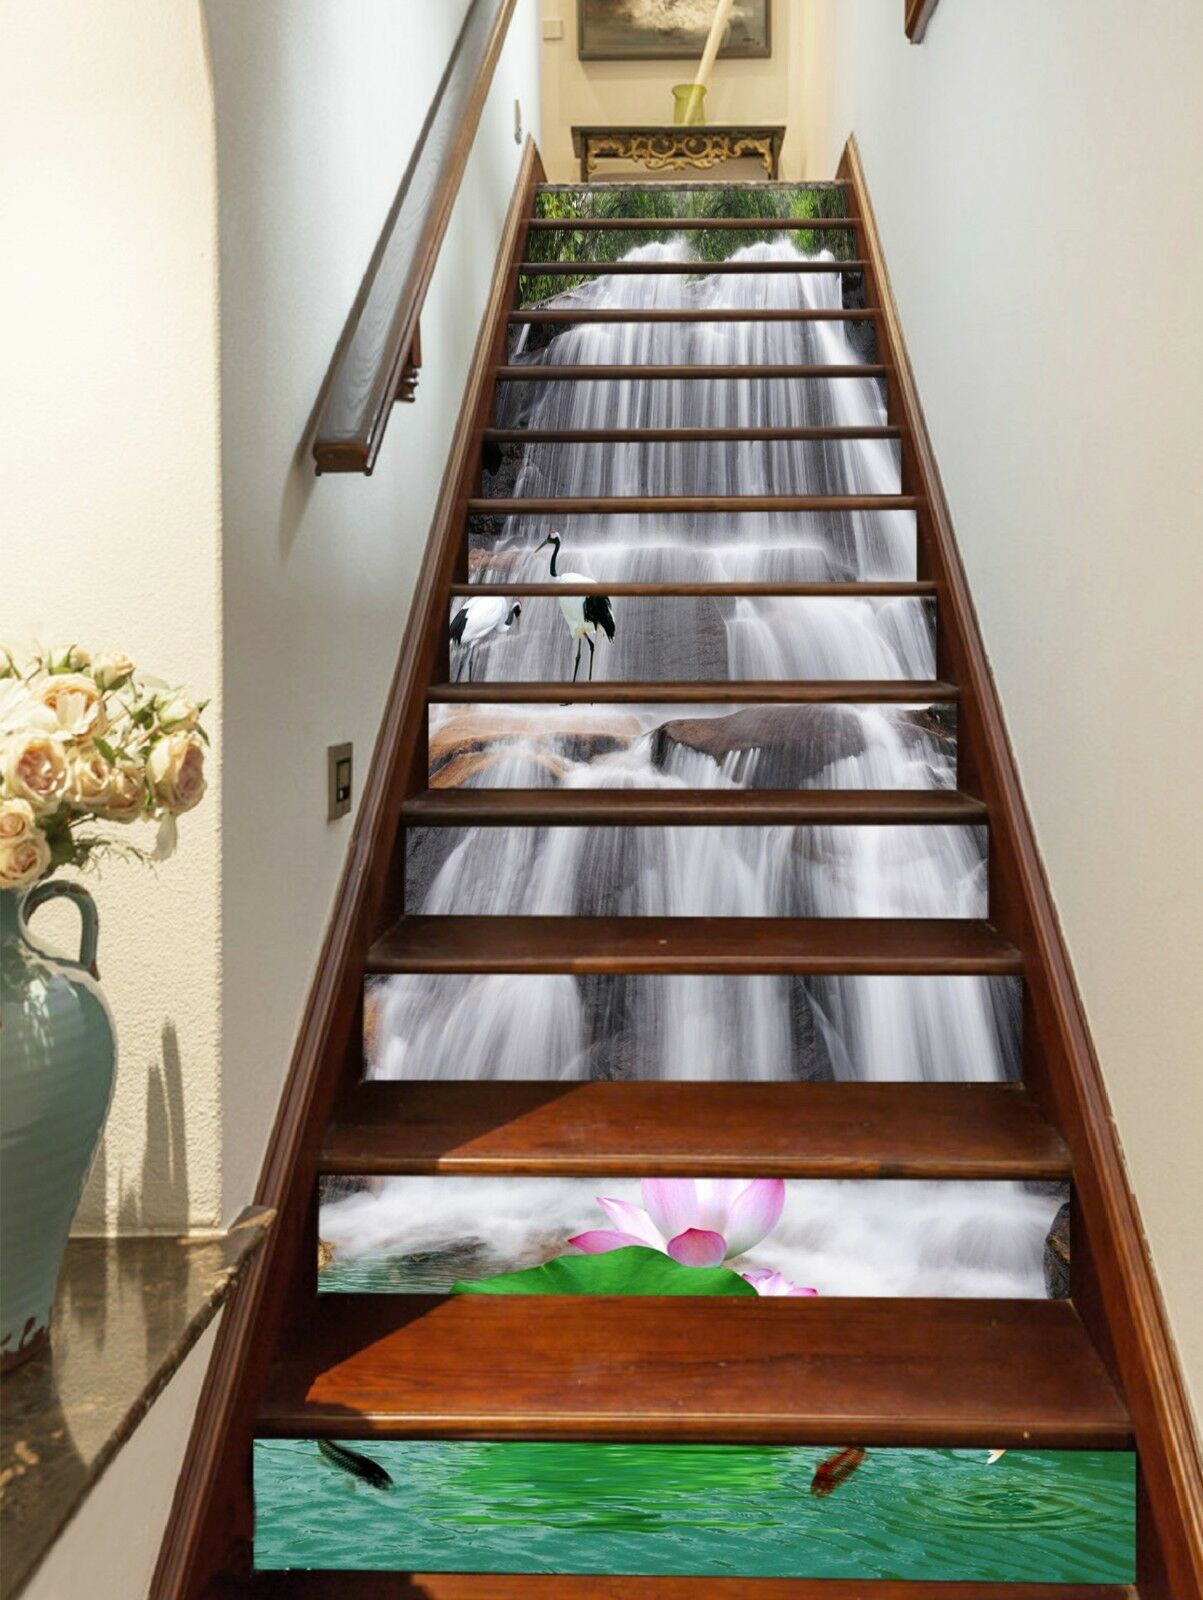 3D Pond water 4 Stair Risers Decoration Photo Mural Vinyl Decal Wallpaper UK